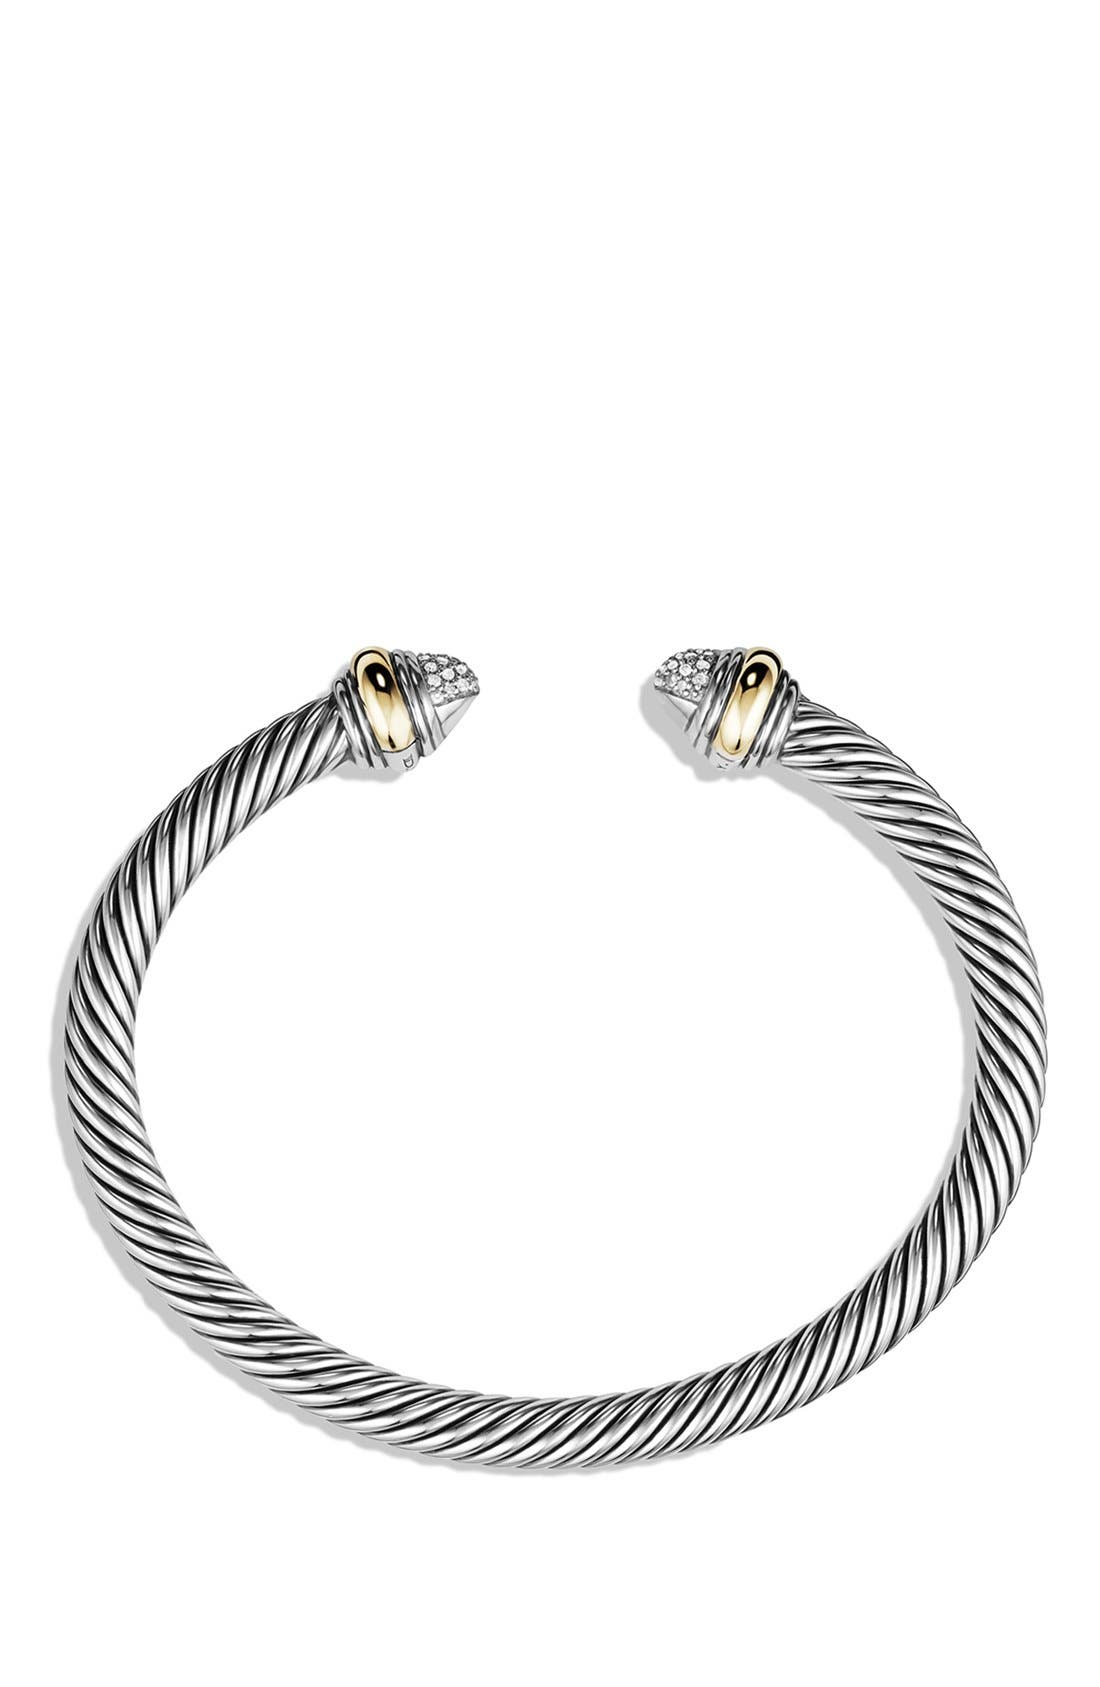 DAVID YURMAN,                             Cable Classics Bracelet with Diamonds & 14K Gold, 5mm,                             Alternate thumbnail 2, color,                             DIAMOND